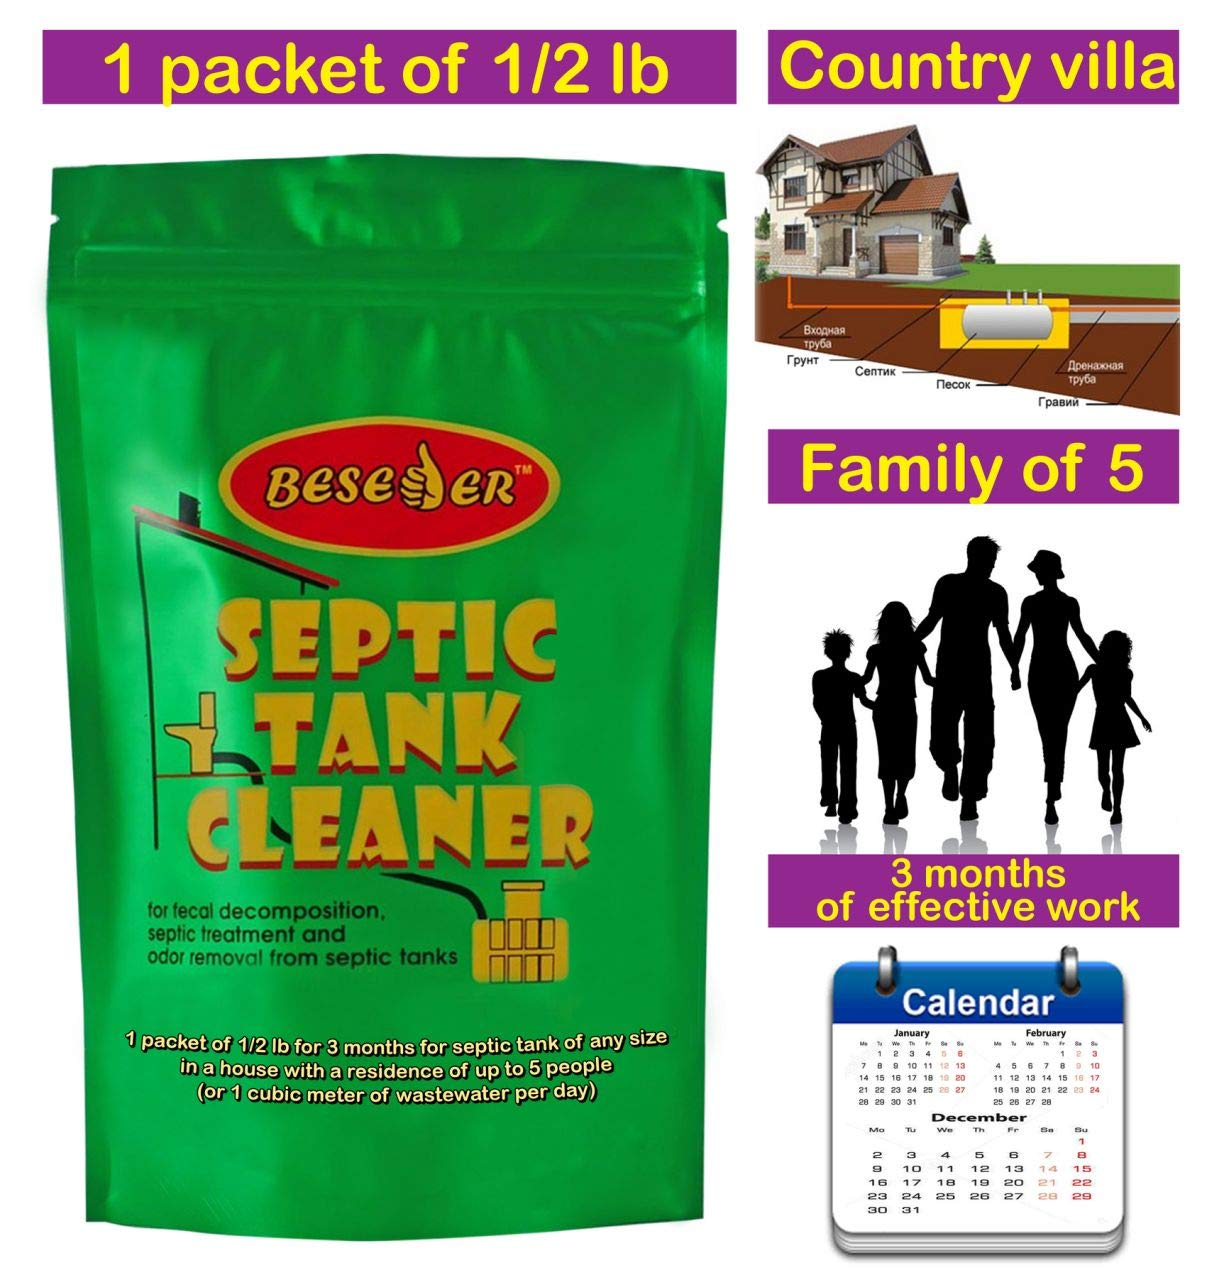 Septic Tank Cleaner for fecal decomposition, septic treatment and odor removal from septic tanks, for septic with size 800-2400 gallons, concentration 2 billion CFU/g … (3 months)